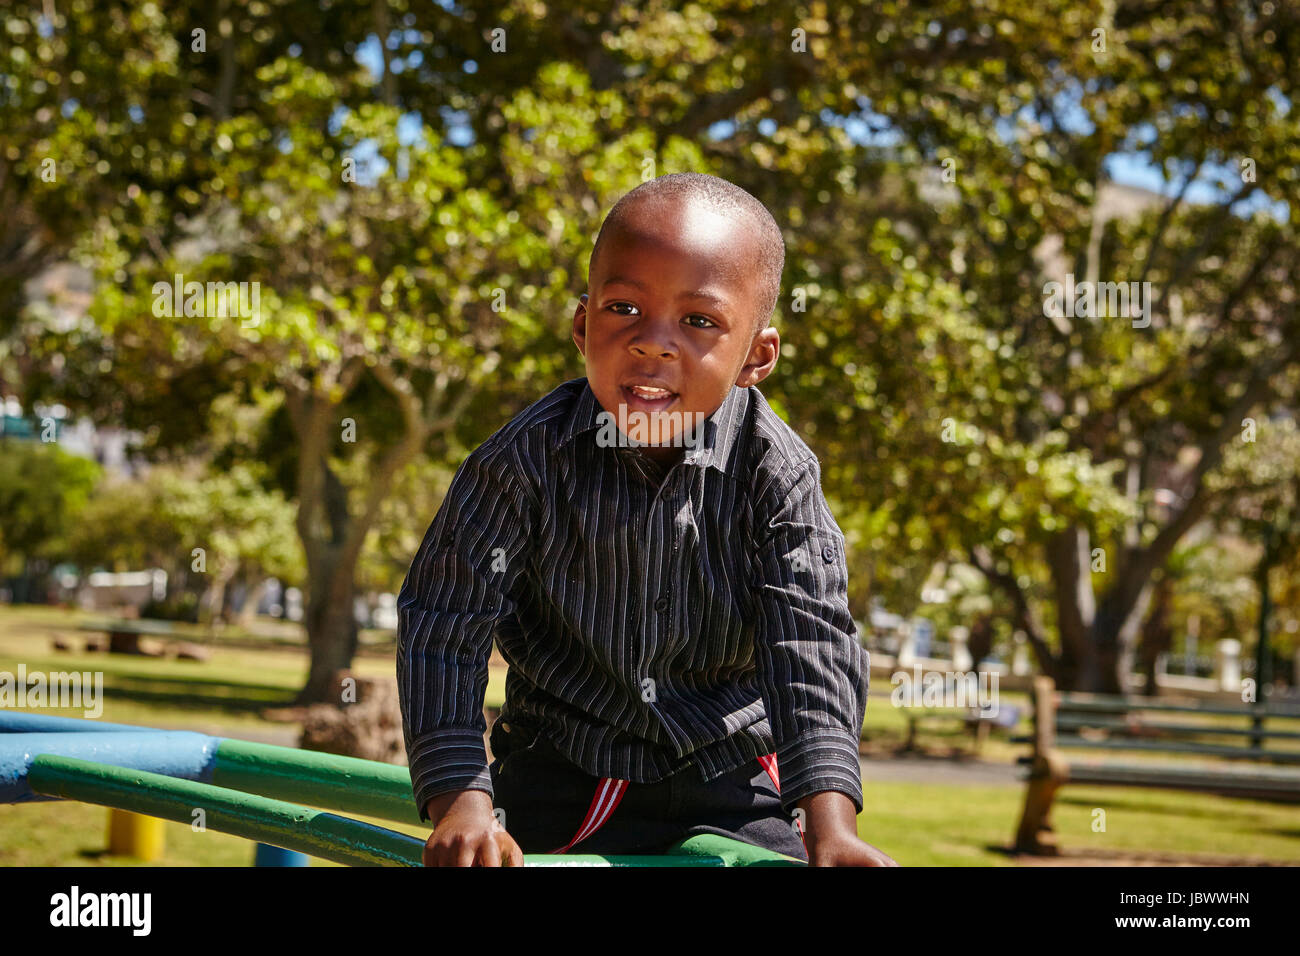 Boy on climbing frame in playground - Stock Image